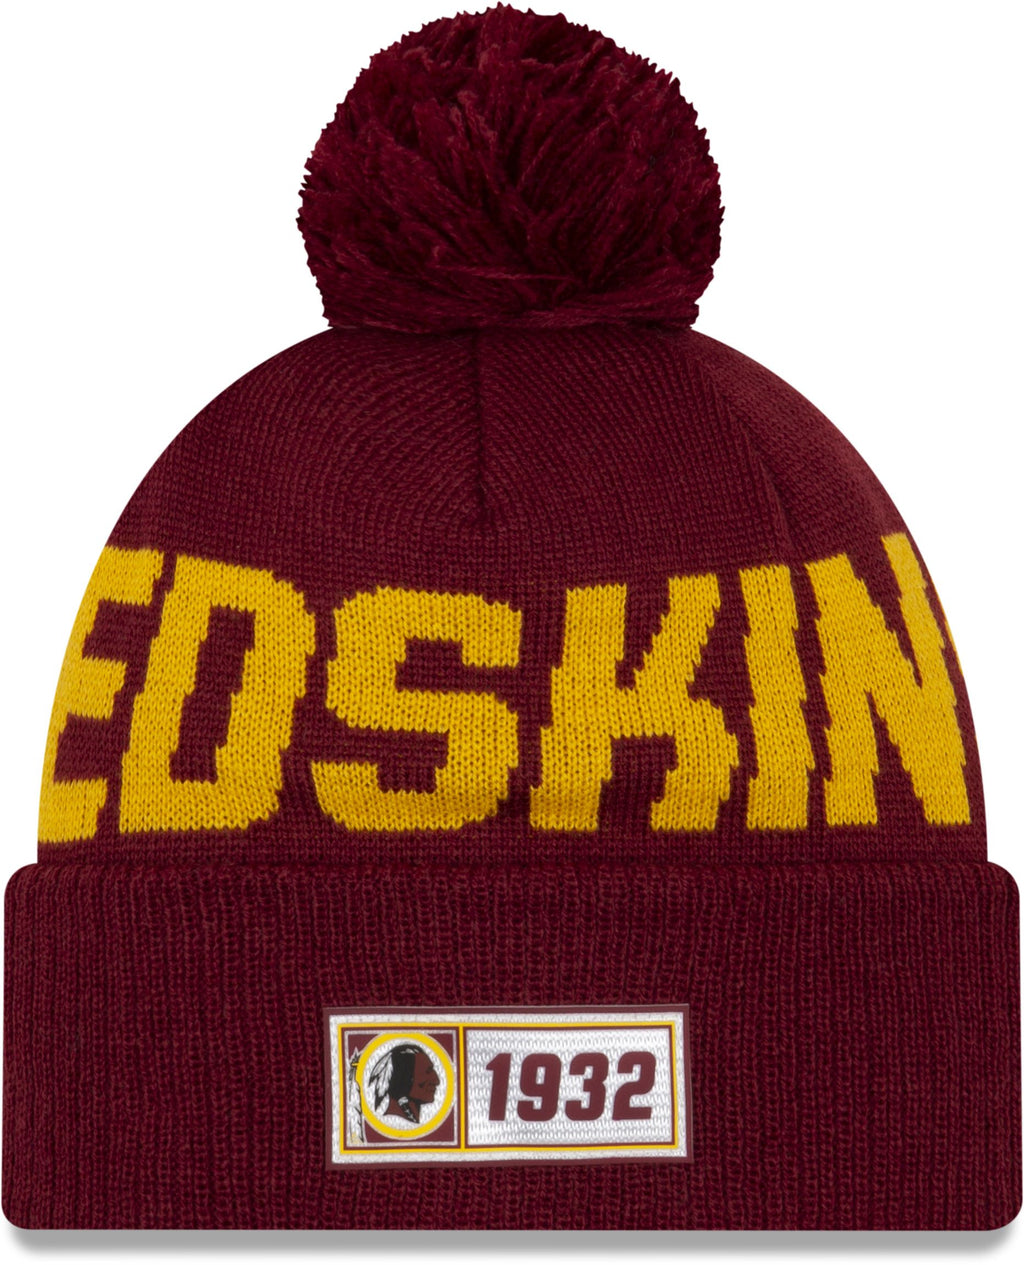 New Era ONF19 Cold Weather Washington Redskins Bobble Beanie Hat Burgundy